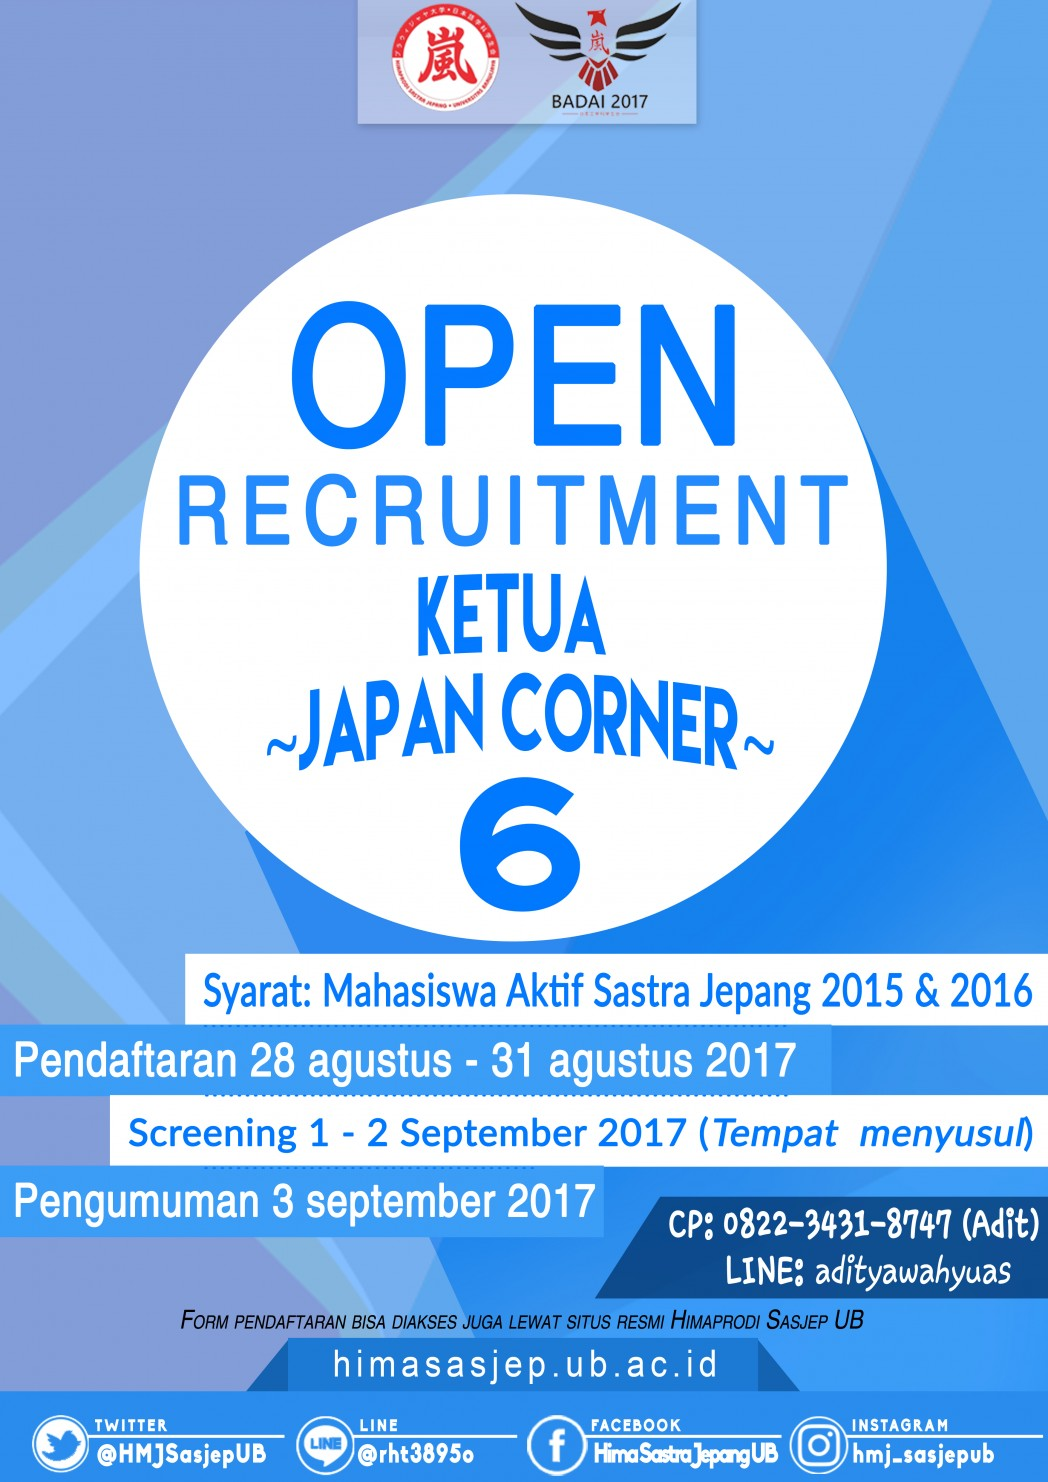 OPEN RECRUITMENT KETUA JAPAN CORNER 6